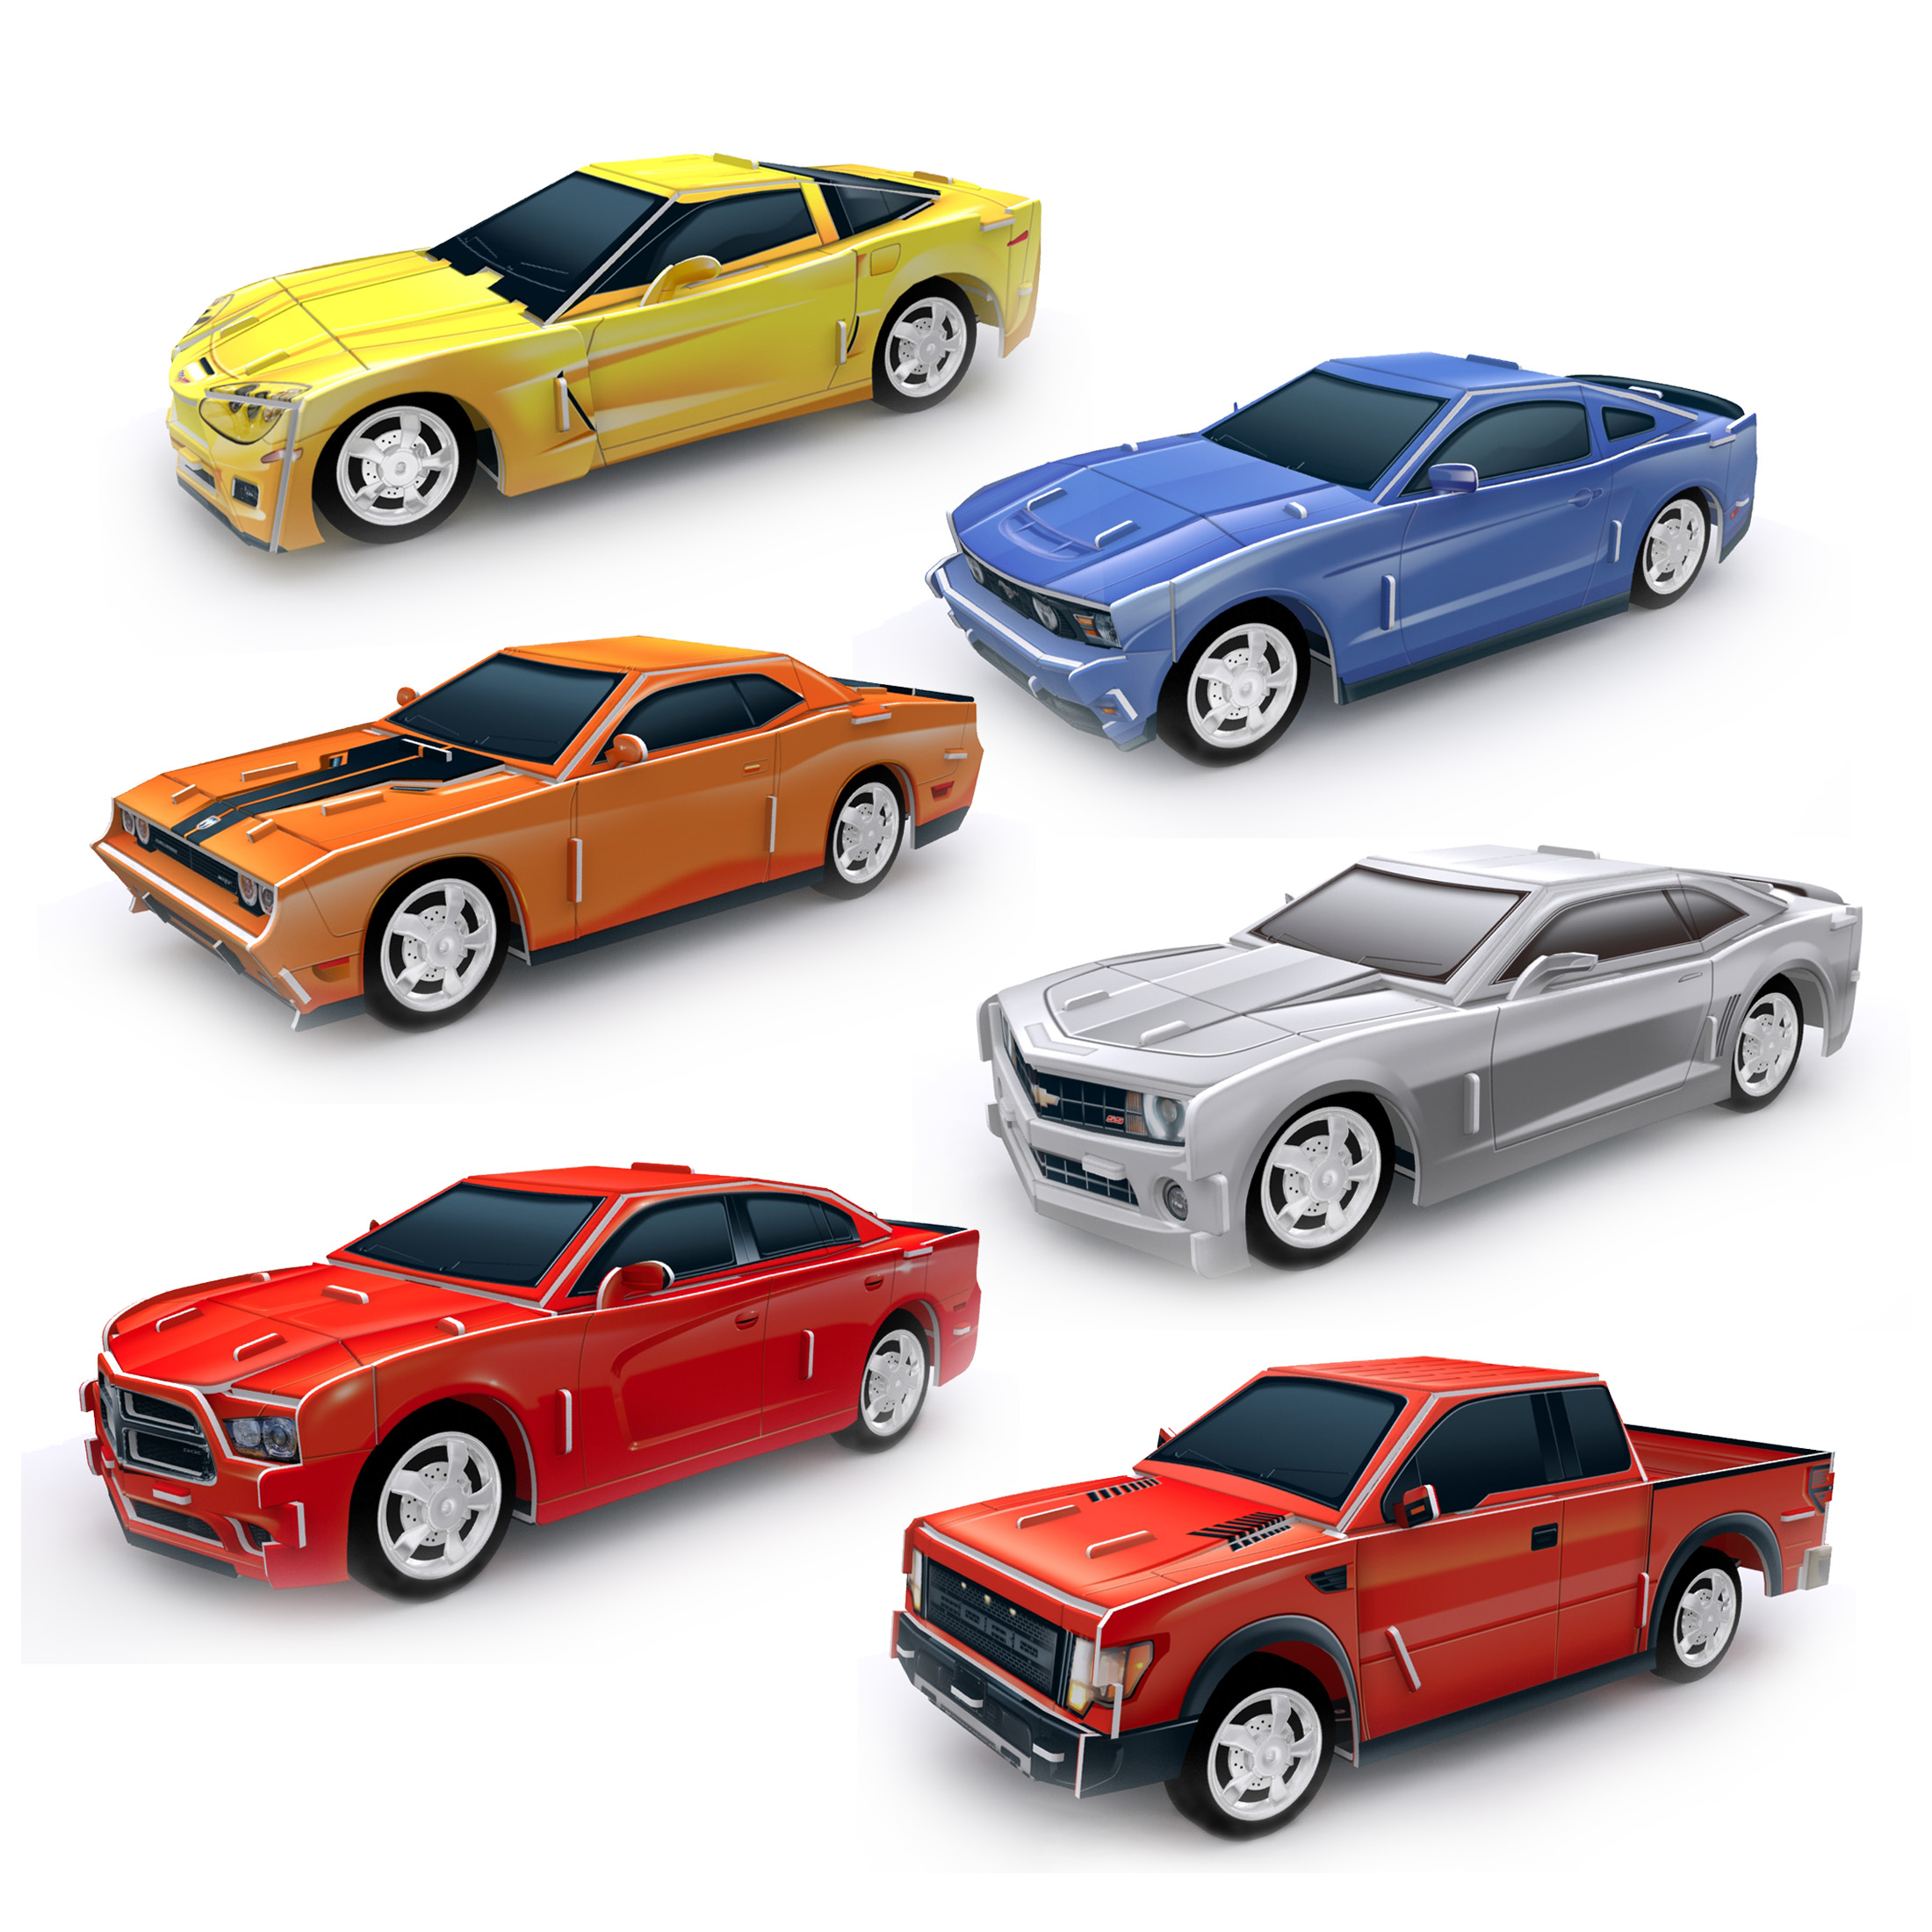 Usd 11 18 Genuine Car Assembly Model Three Dimensional Puzzle